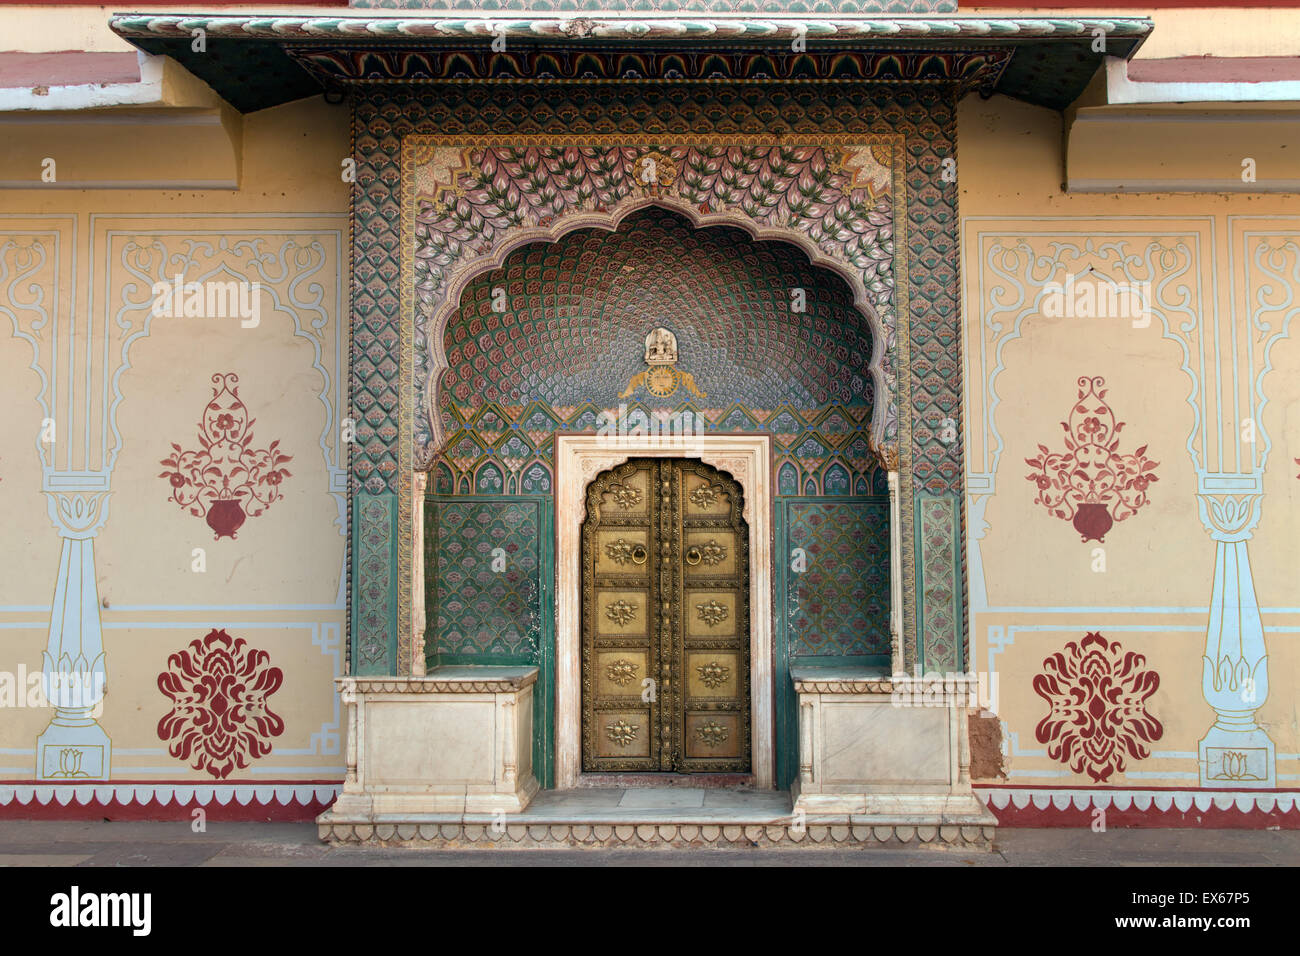 Brass gate with delicate wall paintings in the courtyard of the Chandra Mahal City Palace, Jaipur, Rajasthan, India - Stock Image